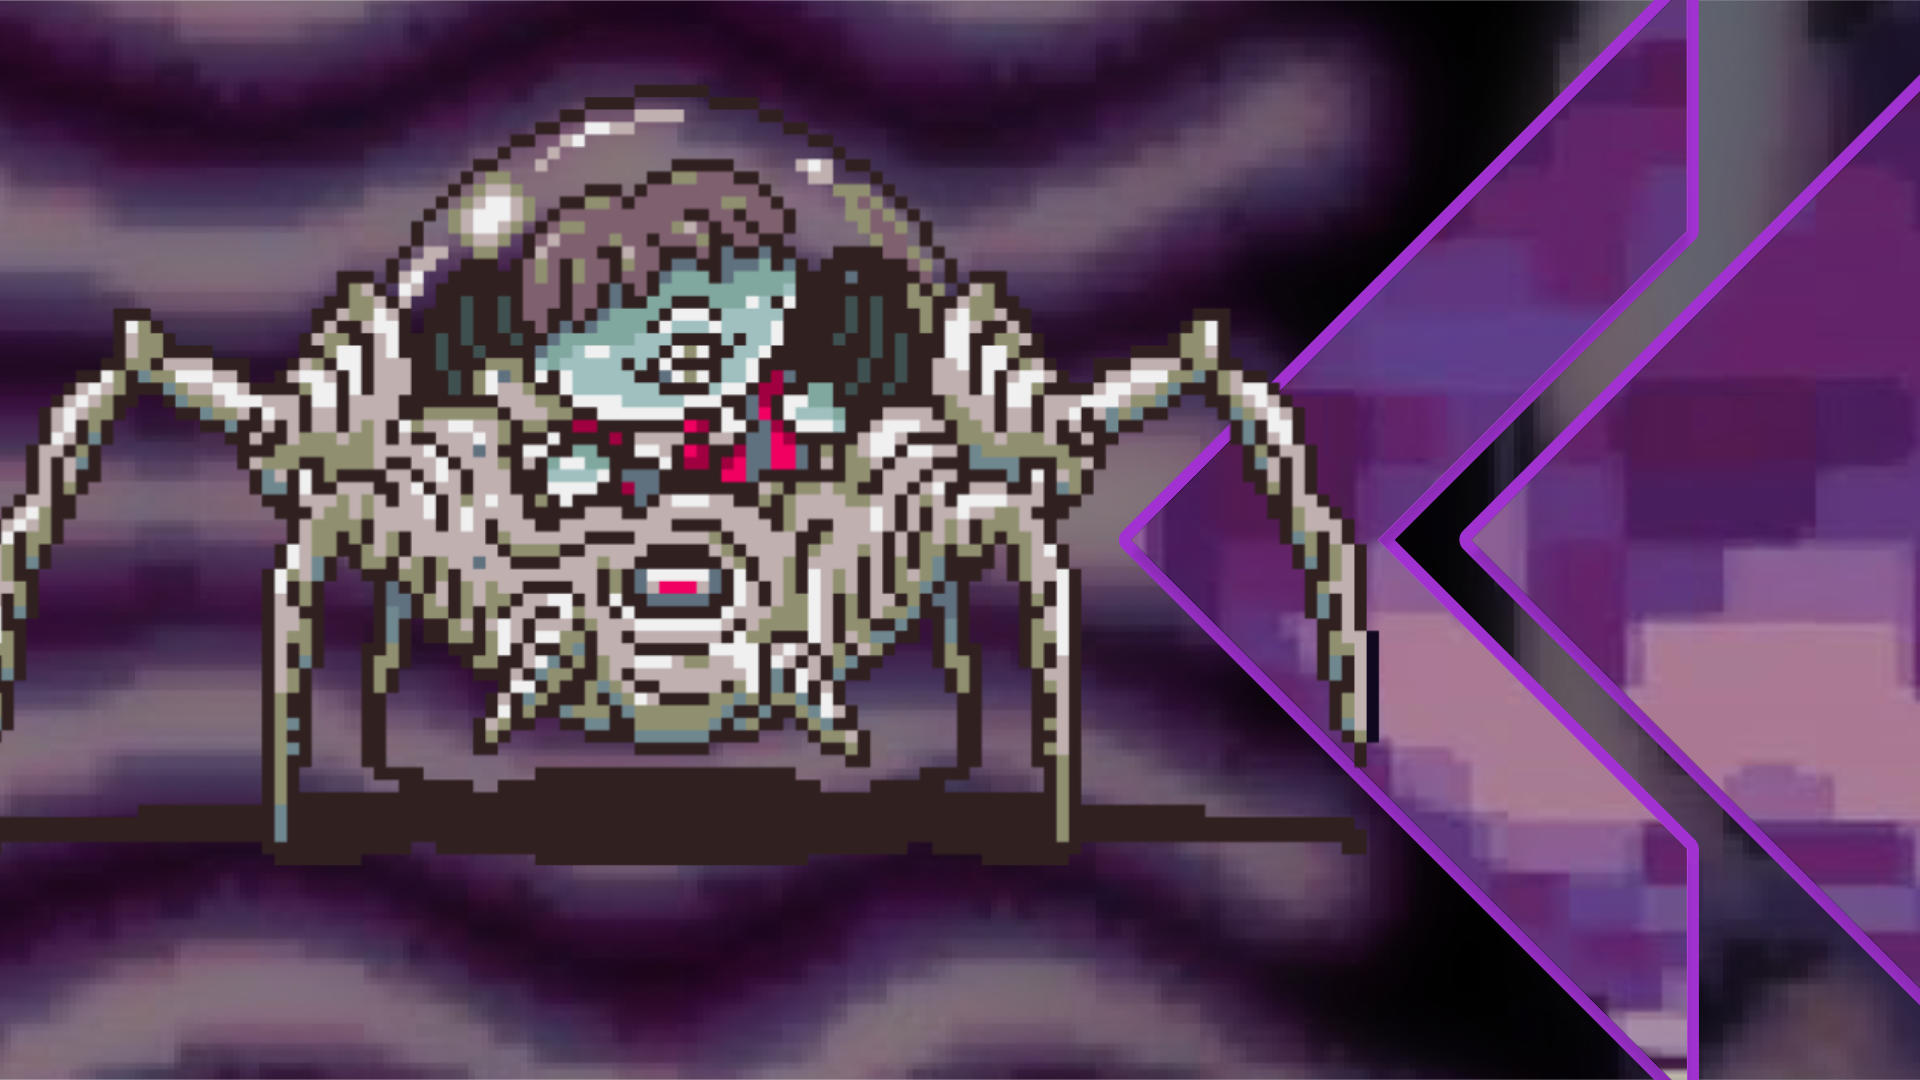 Zombie-like boy with green skin piloting a skeletal-styled arachnid from inside a glass bubble